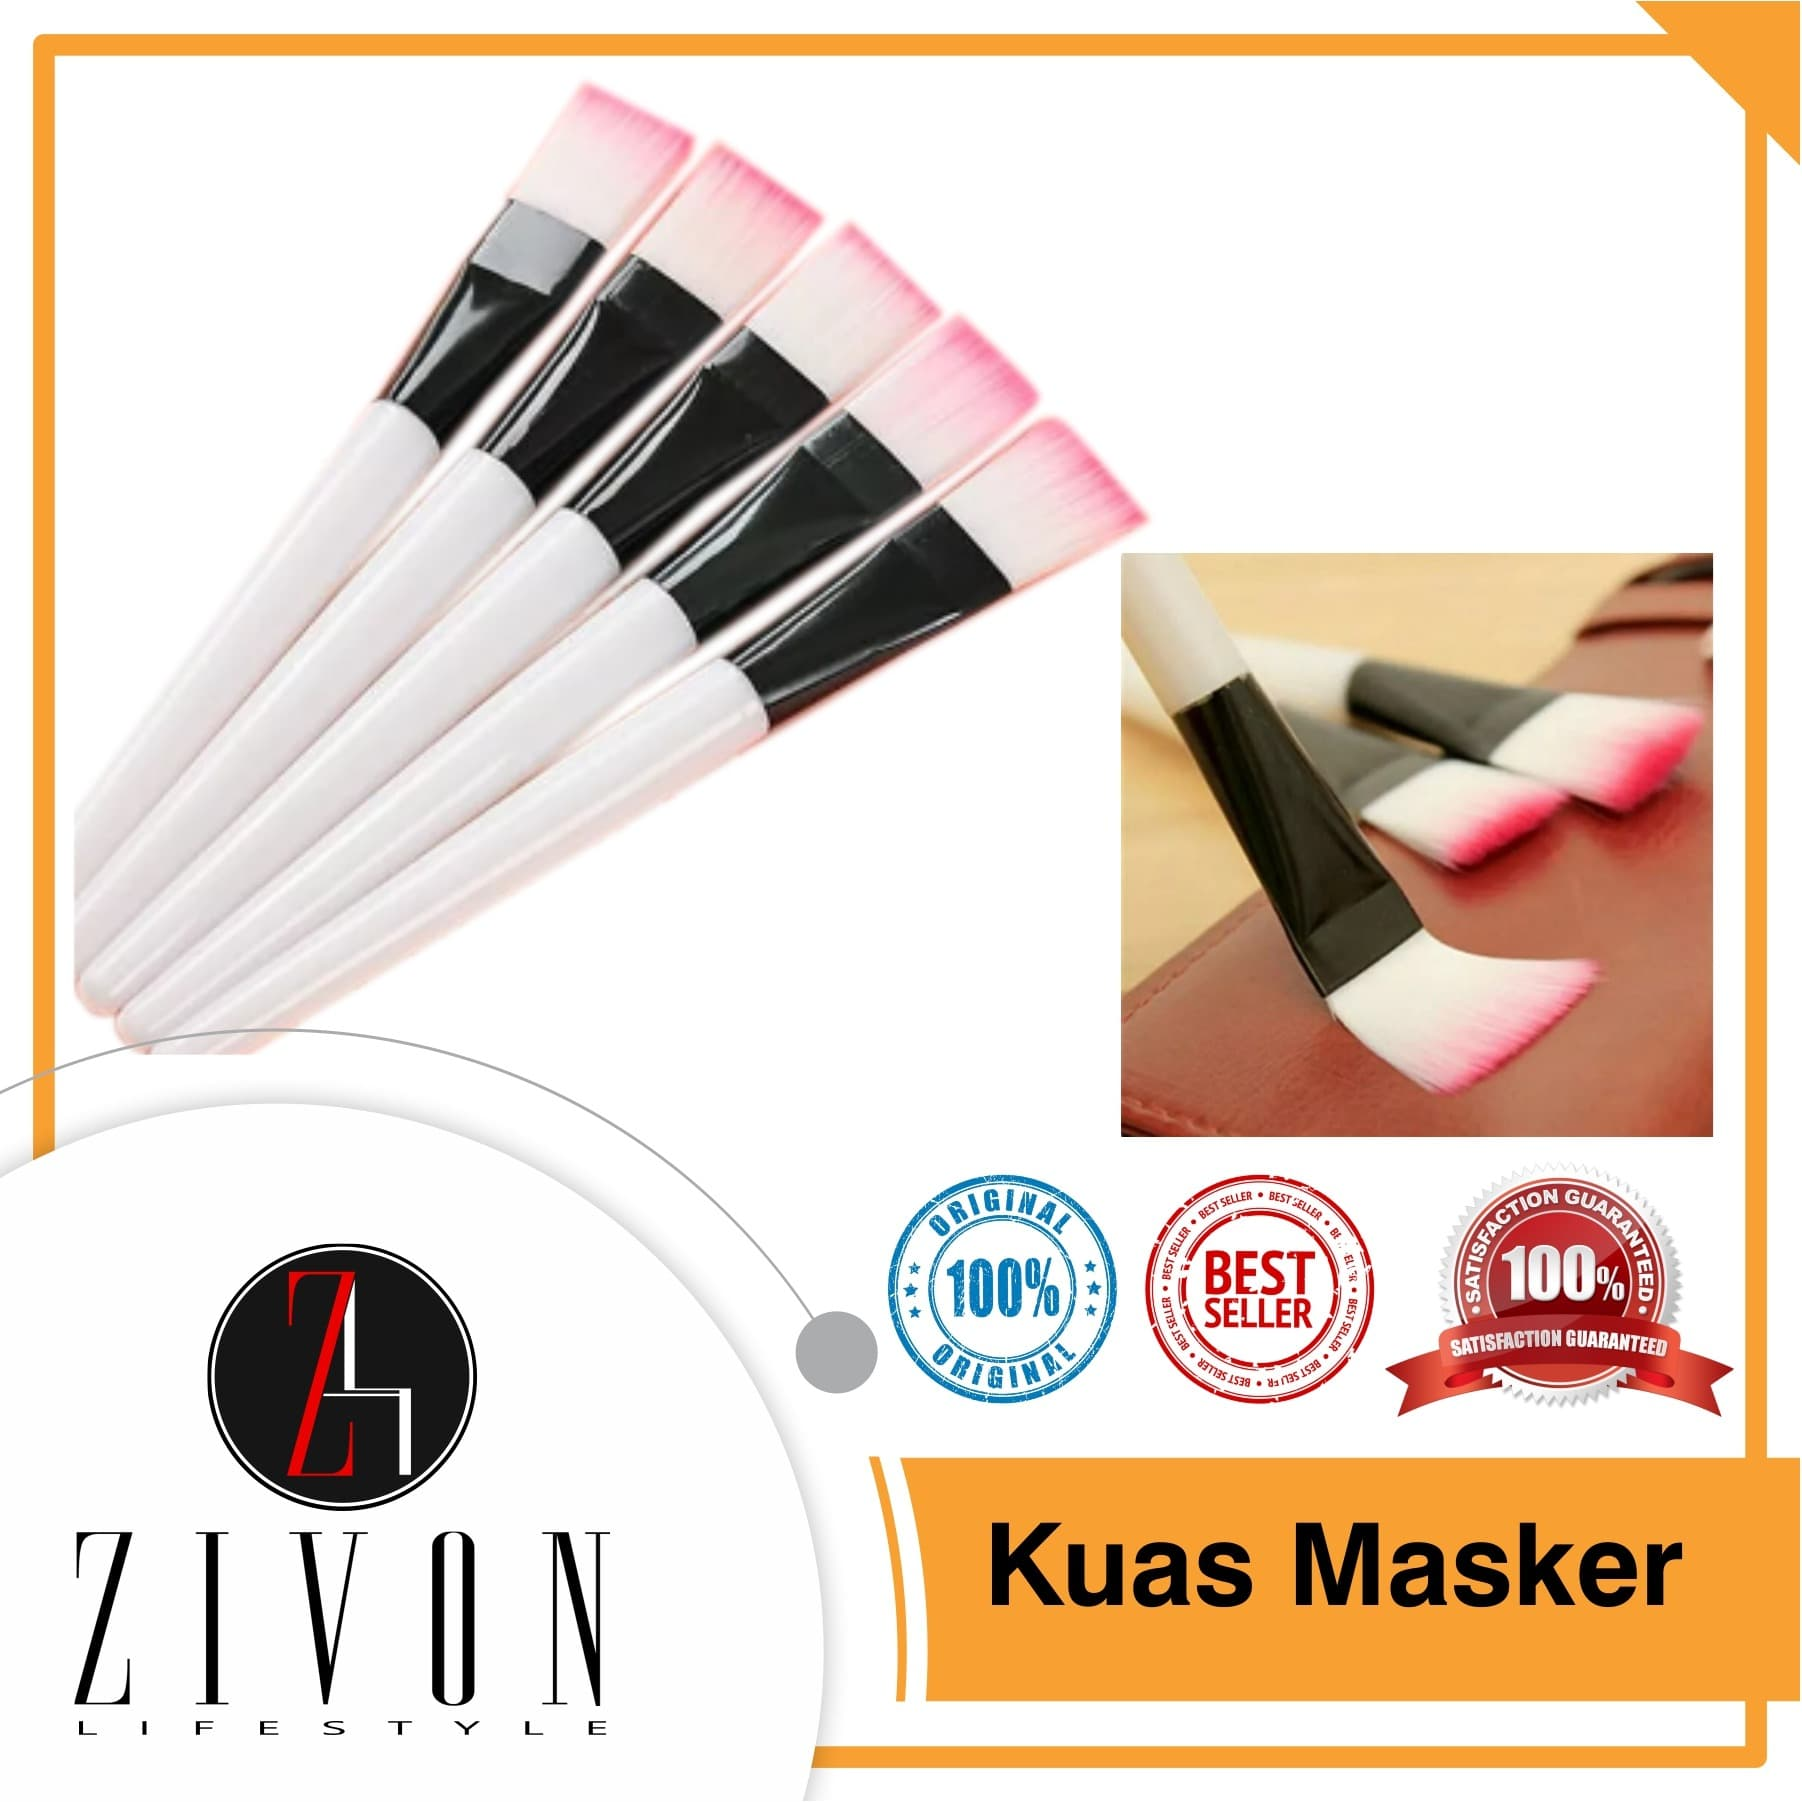 Kuas Masker Napkin Nilon Brush Makeup Make Up thumbnail